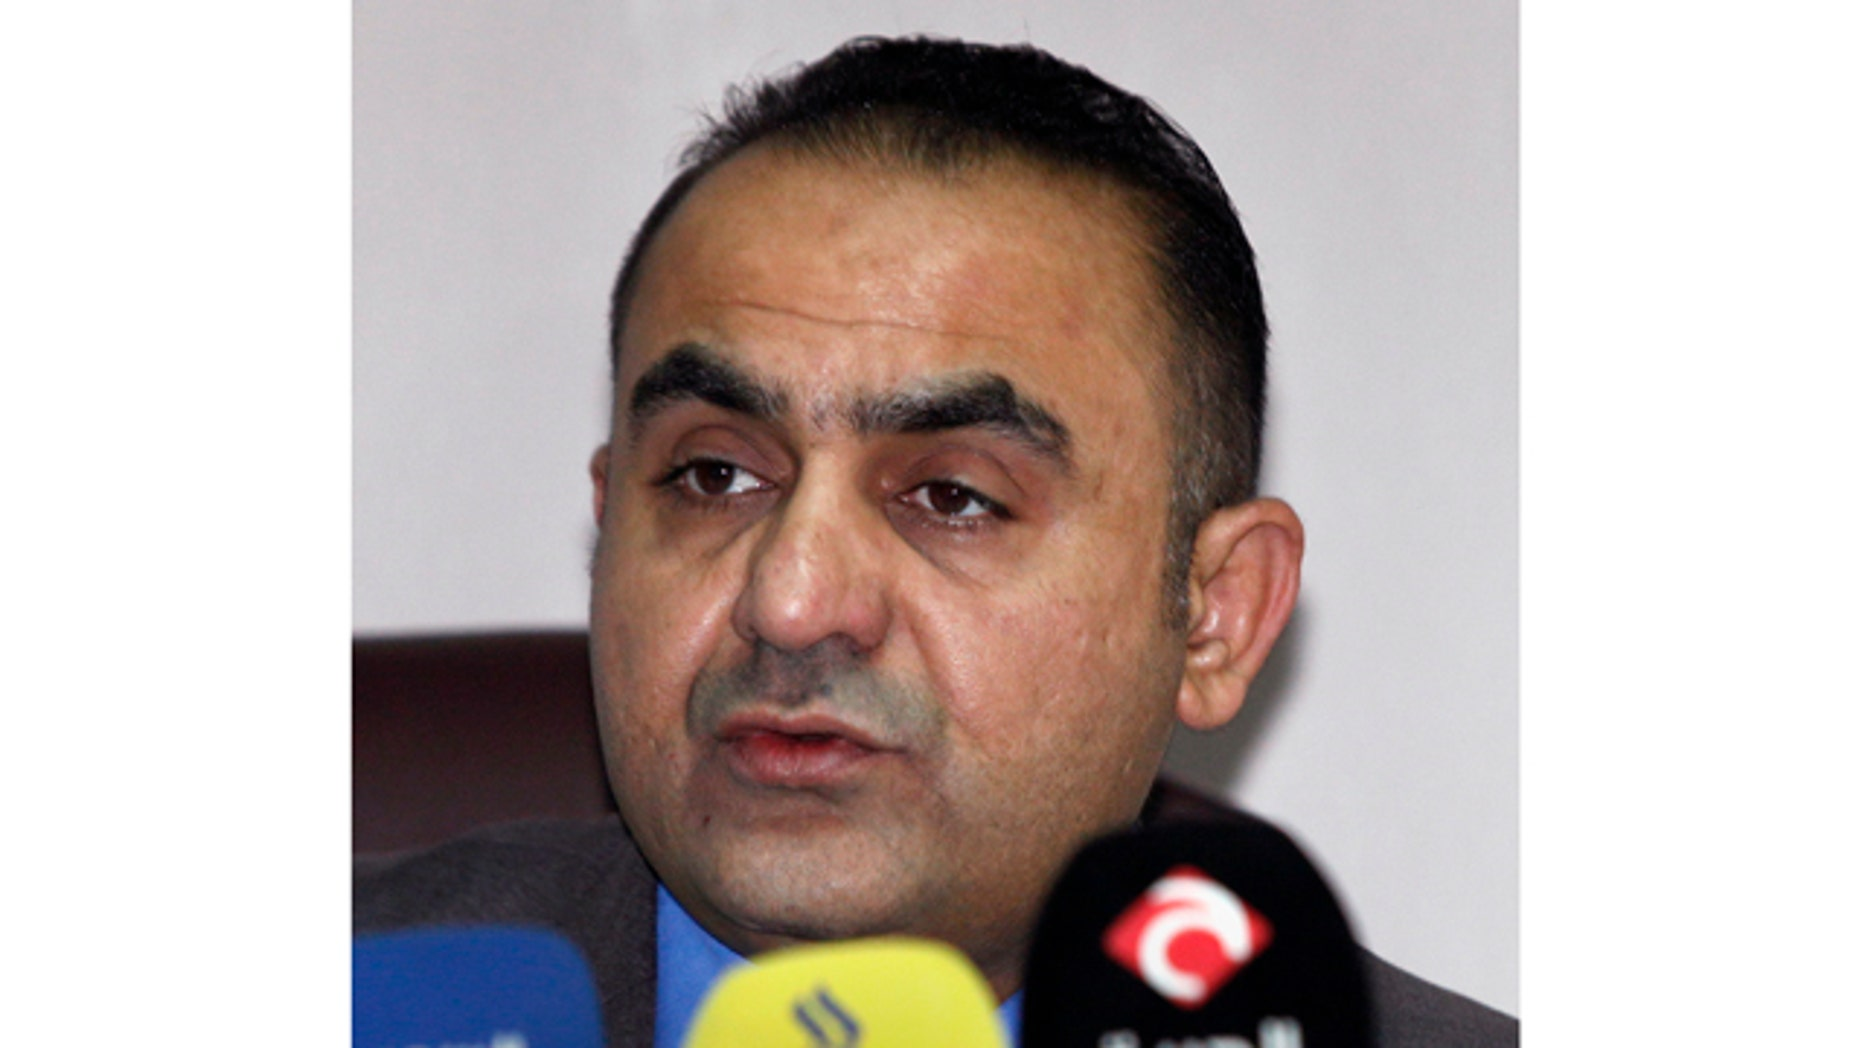 Feb. 16, 2012- Abdul-Sattar Bayrkdar, Iraqi Supreme Judicial Council spokesman, speaks to reporters in Baghdad, Iraq. An Iraqi investigation panel says the country's Sunni vice president and his employees were behind years of deadly attacks on security officials and Shiite pilgrims.